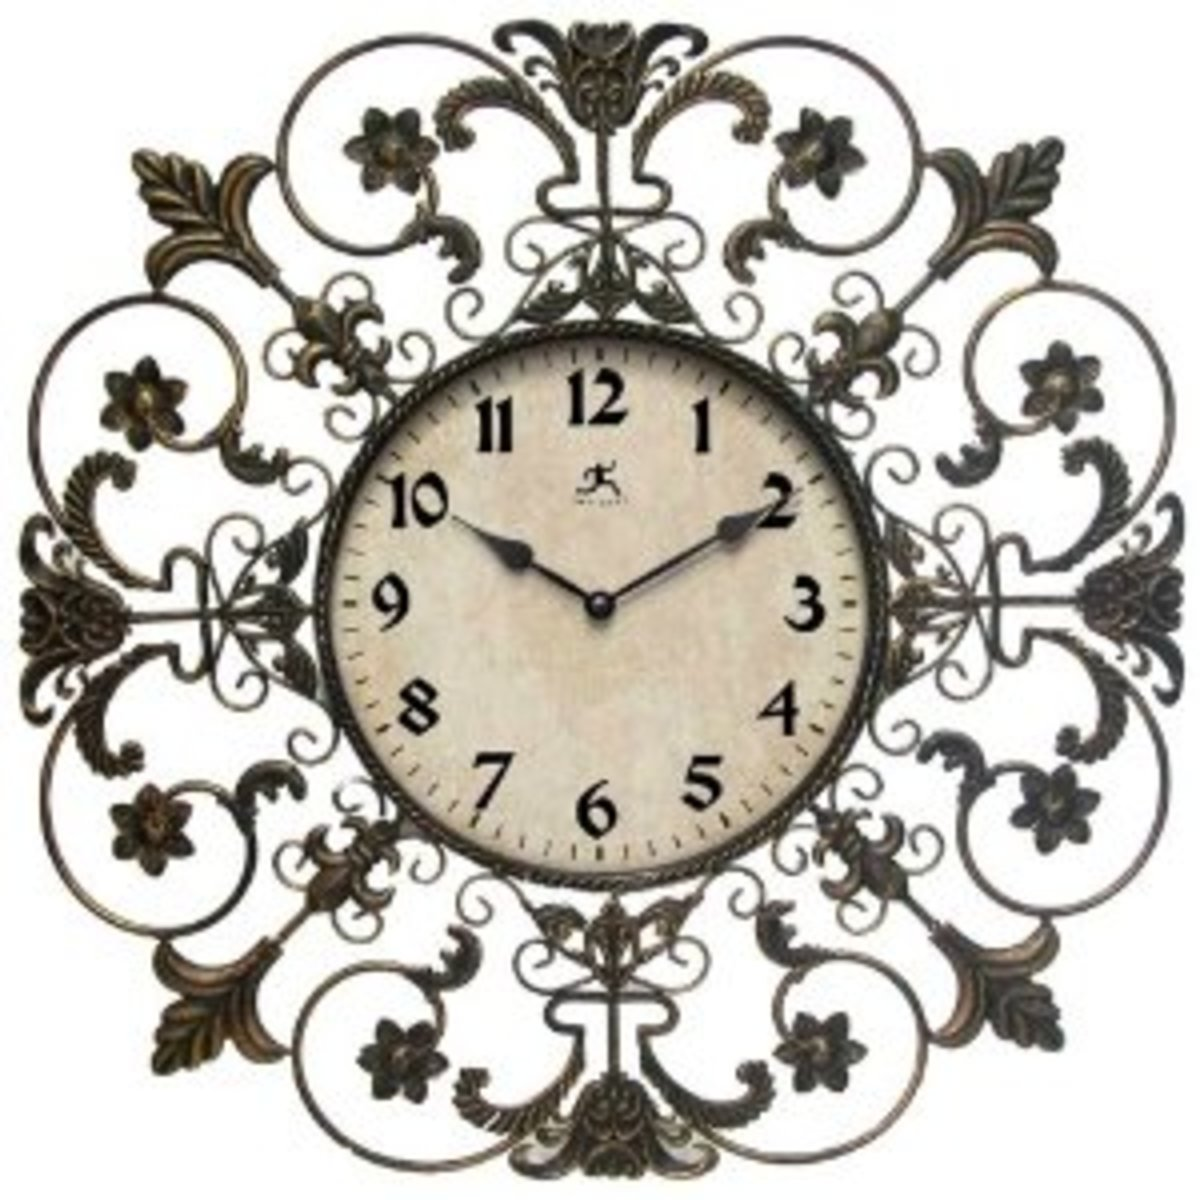 Unique Wall Clocks - What's On Your Wall